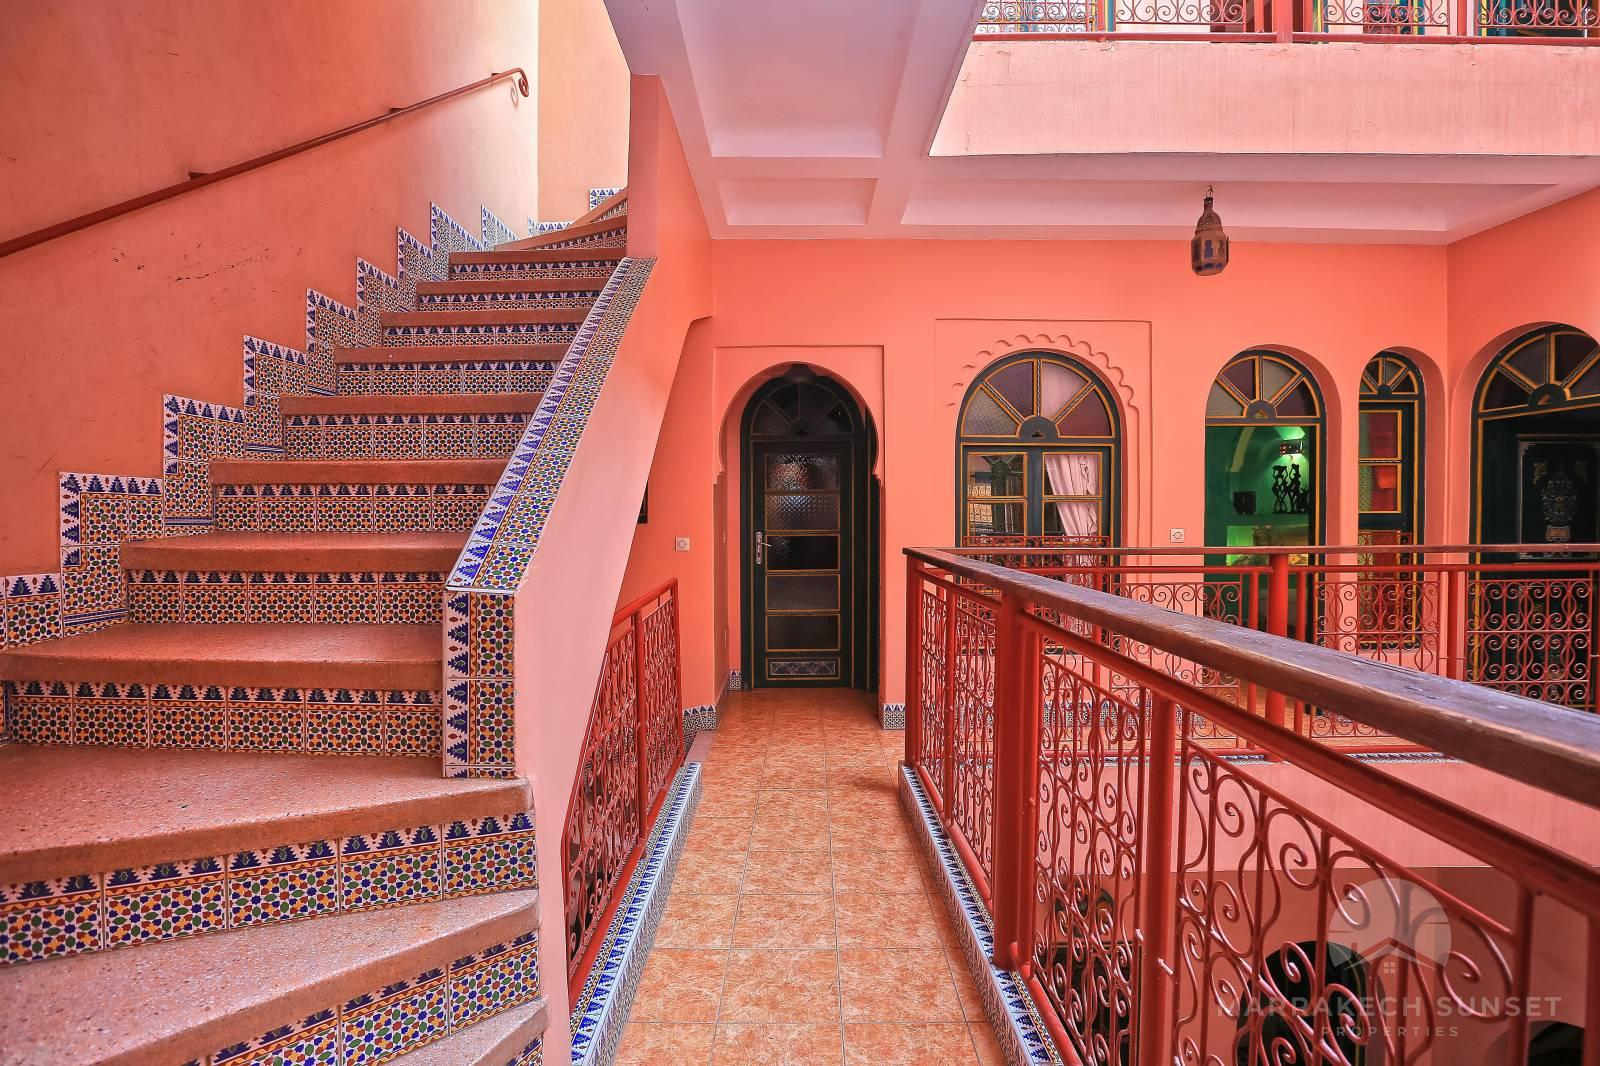 An exceptional 6 bedroom Marrakech riad for sale near Jemaa el fna square